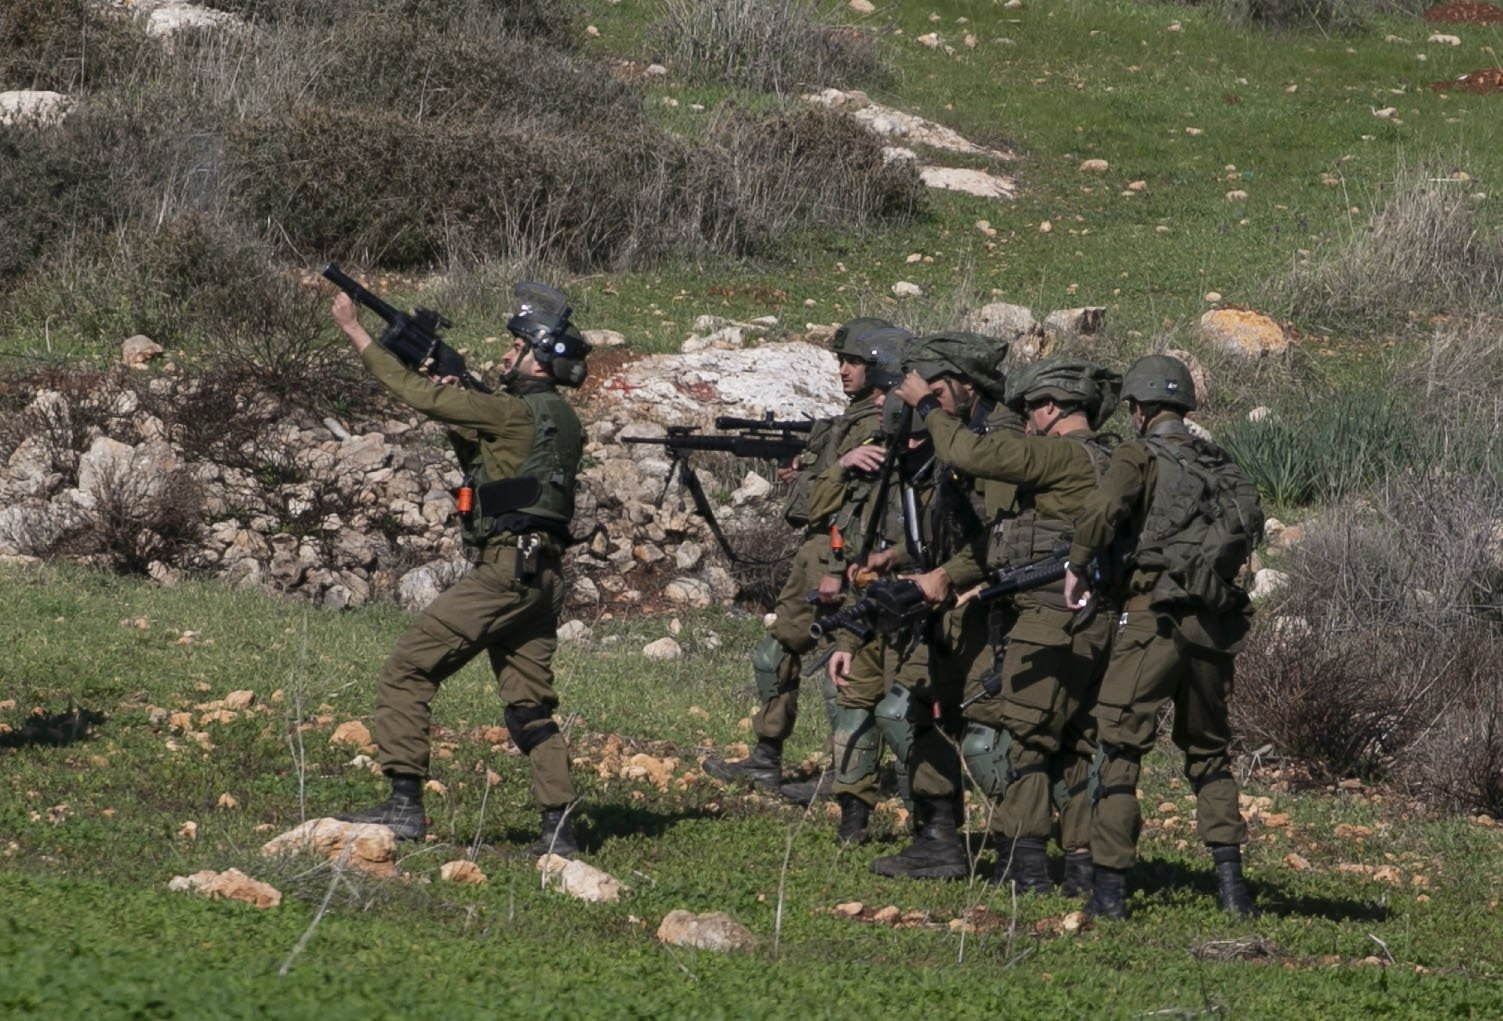 Israeli soldiers take aim to disperse Palestinians protesting the expansion of settlements near the village of Beit Dajan, east of Nablus, in the occupied West Bank, on Dec. 25, 2020. (AFP Photo)